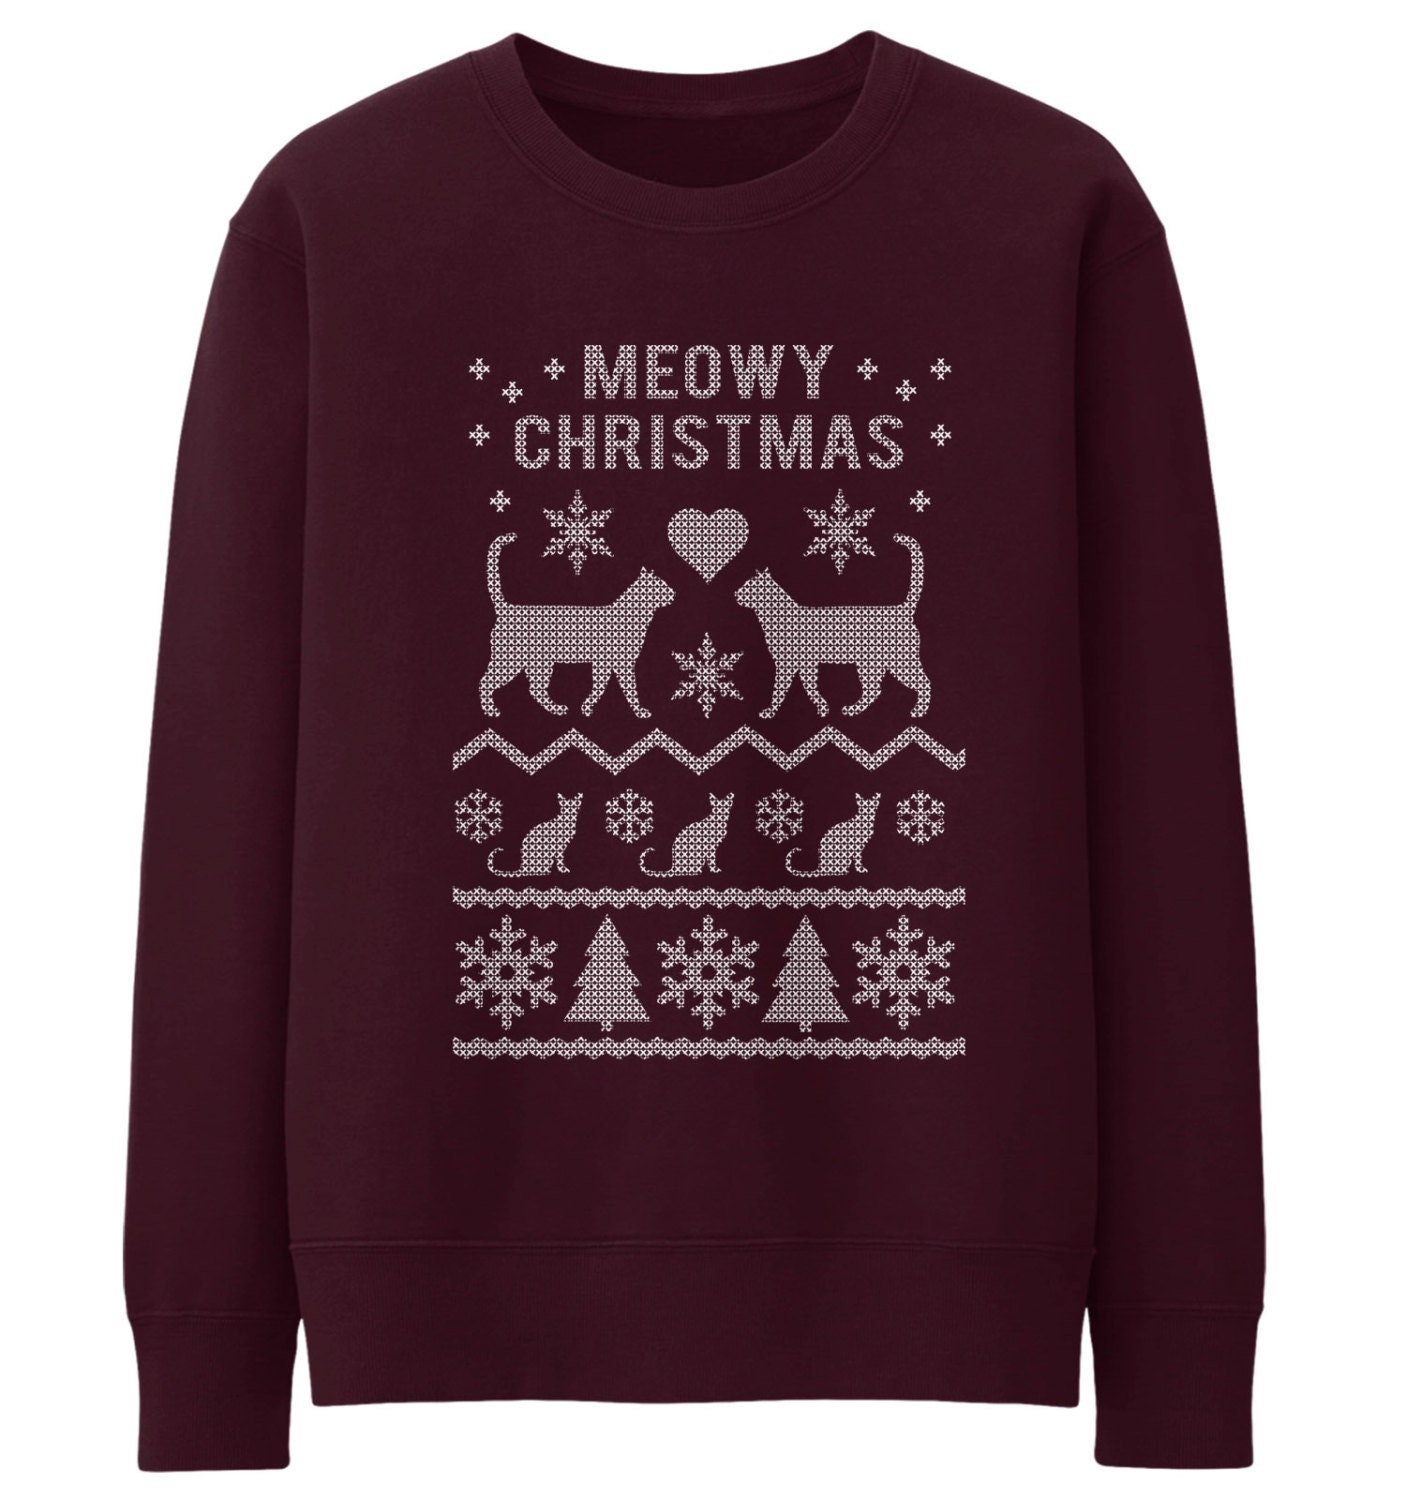 Meowy Christmas Jumper Ugly Fair Isle Style Sweater Xmas Cat